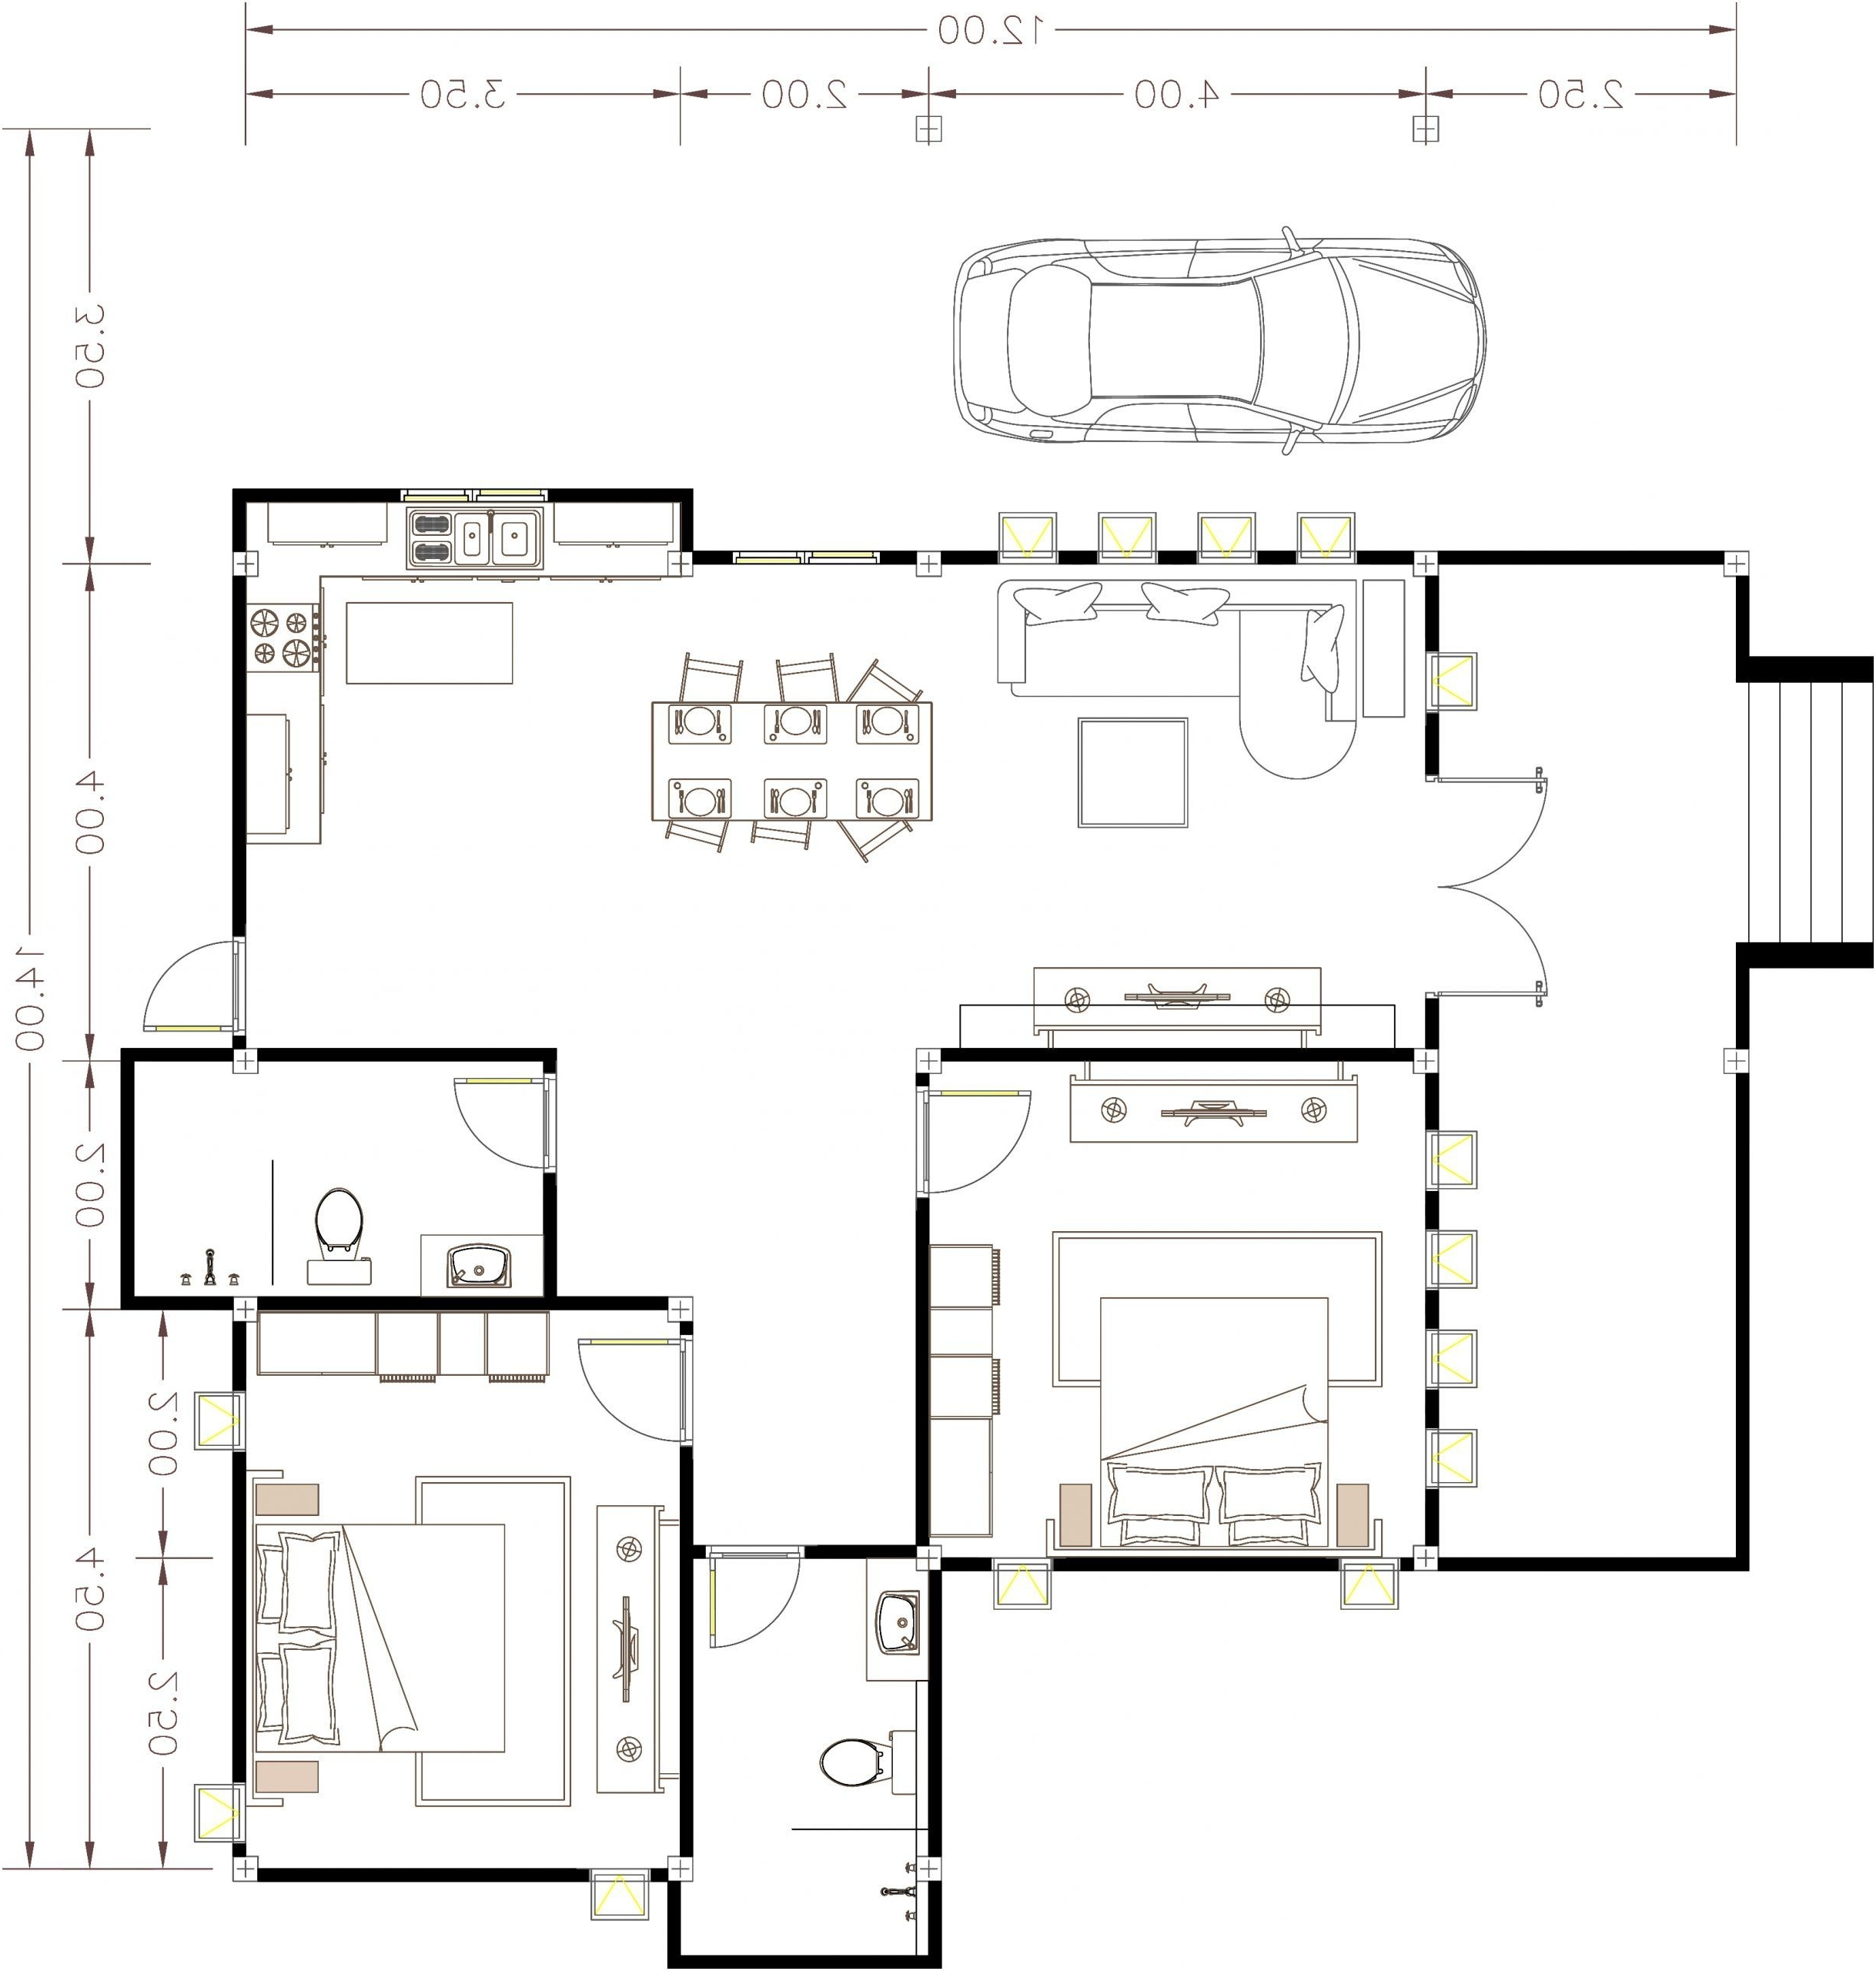 House Plans 14X12 With 2 Bedrooms Hip Roof   House Plans 20+ 14X12 Living Room Inspirations